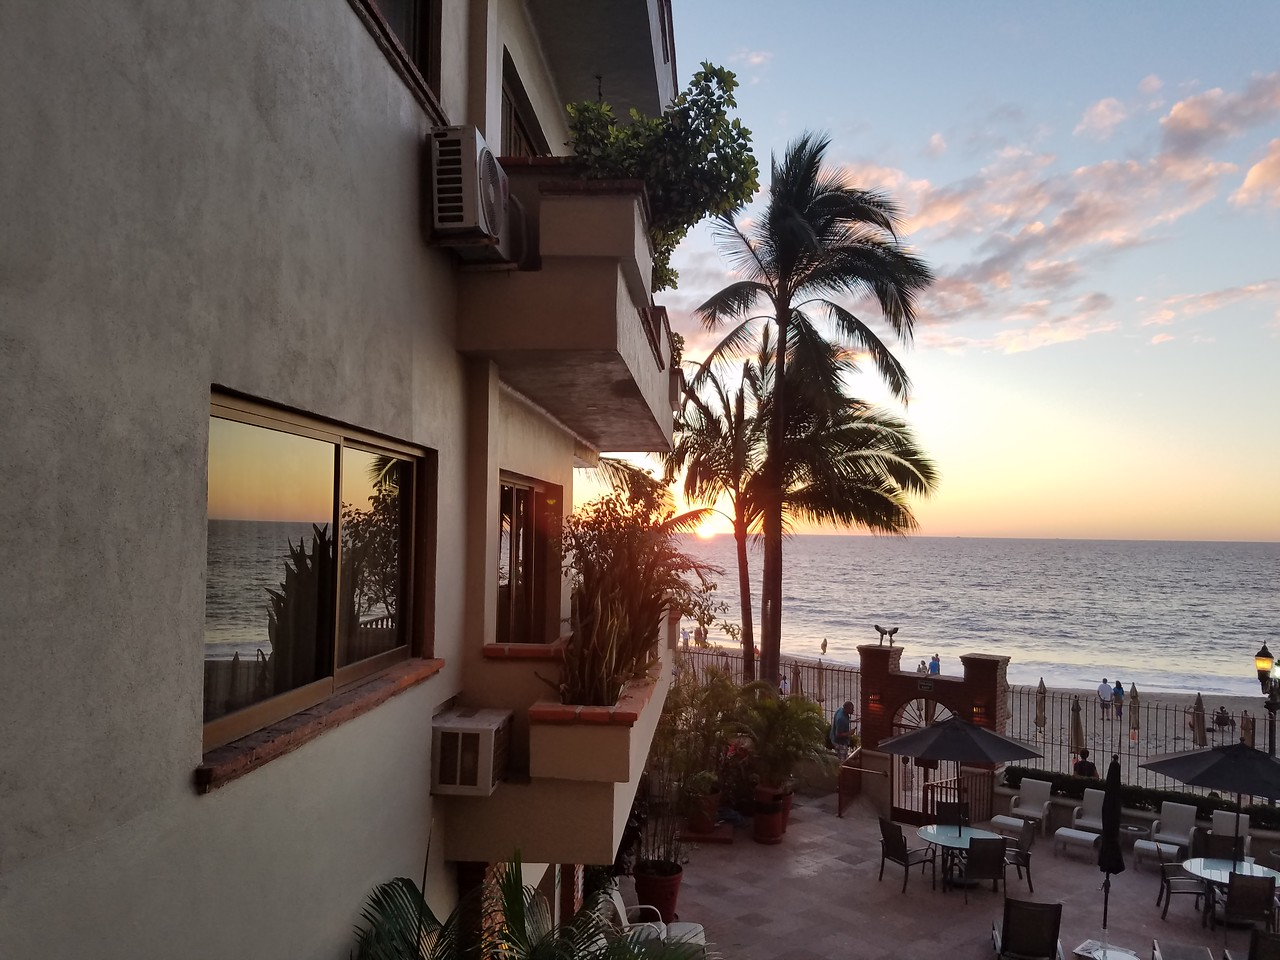 The last sunset in Puerto Vallarta.  Sadness.